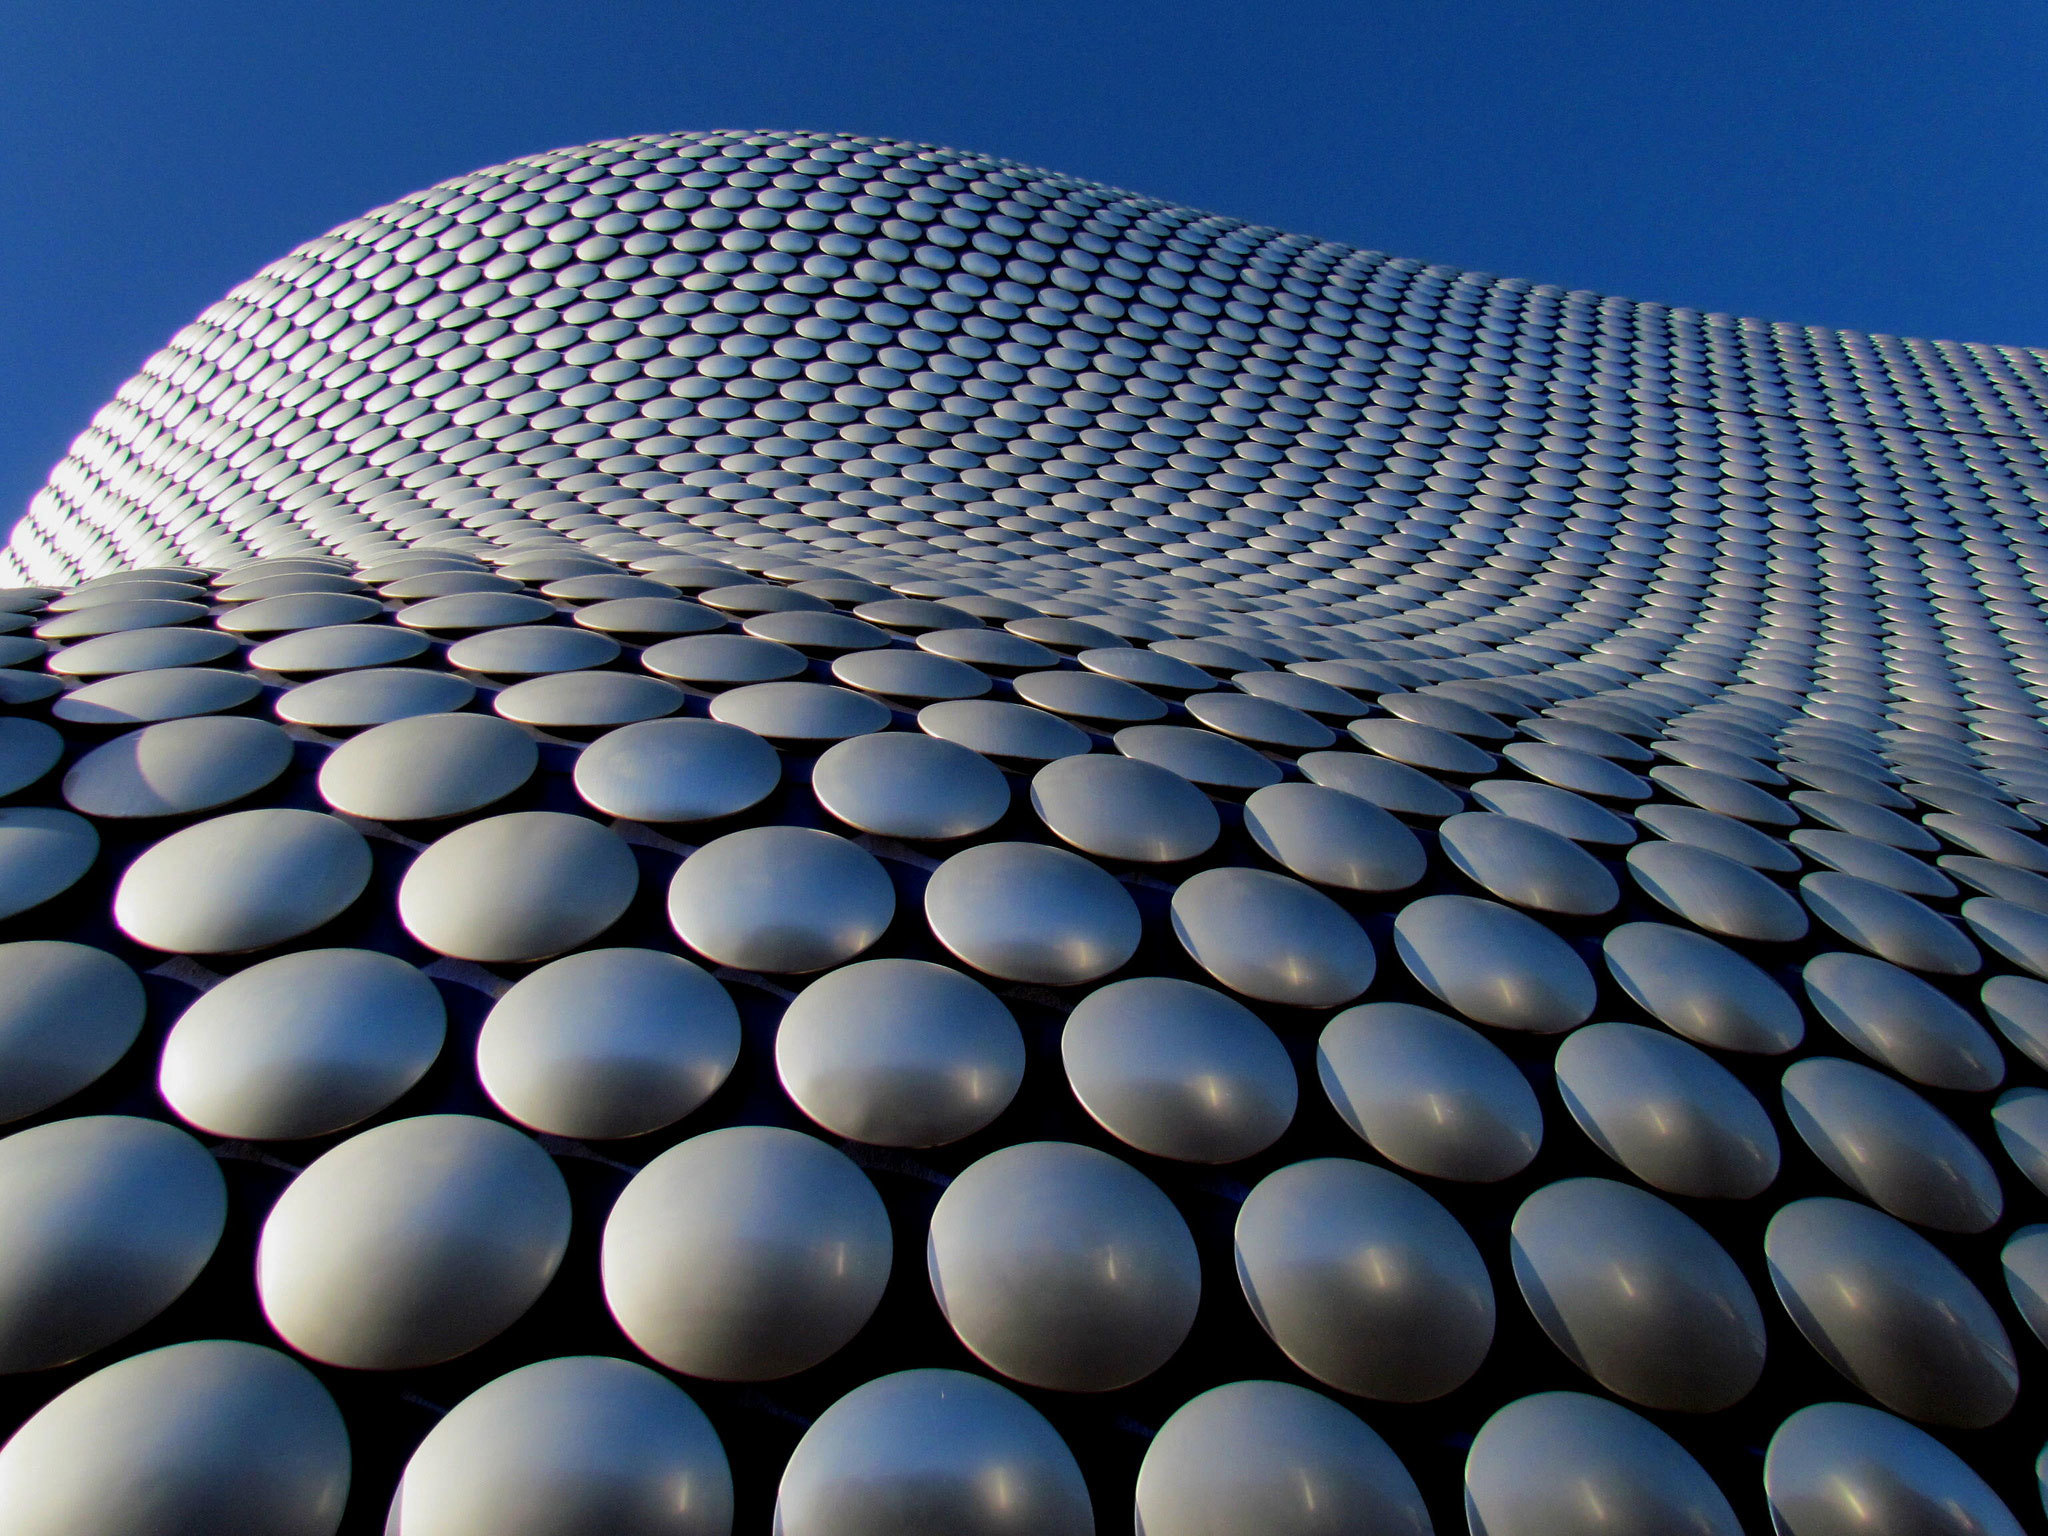 Photo: Selfridges in the Bullring in Birmingham